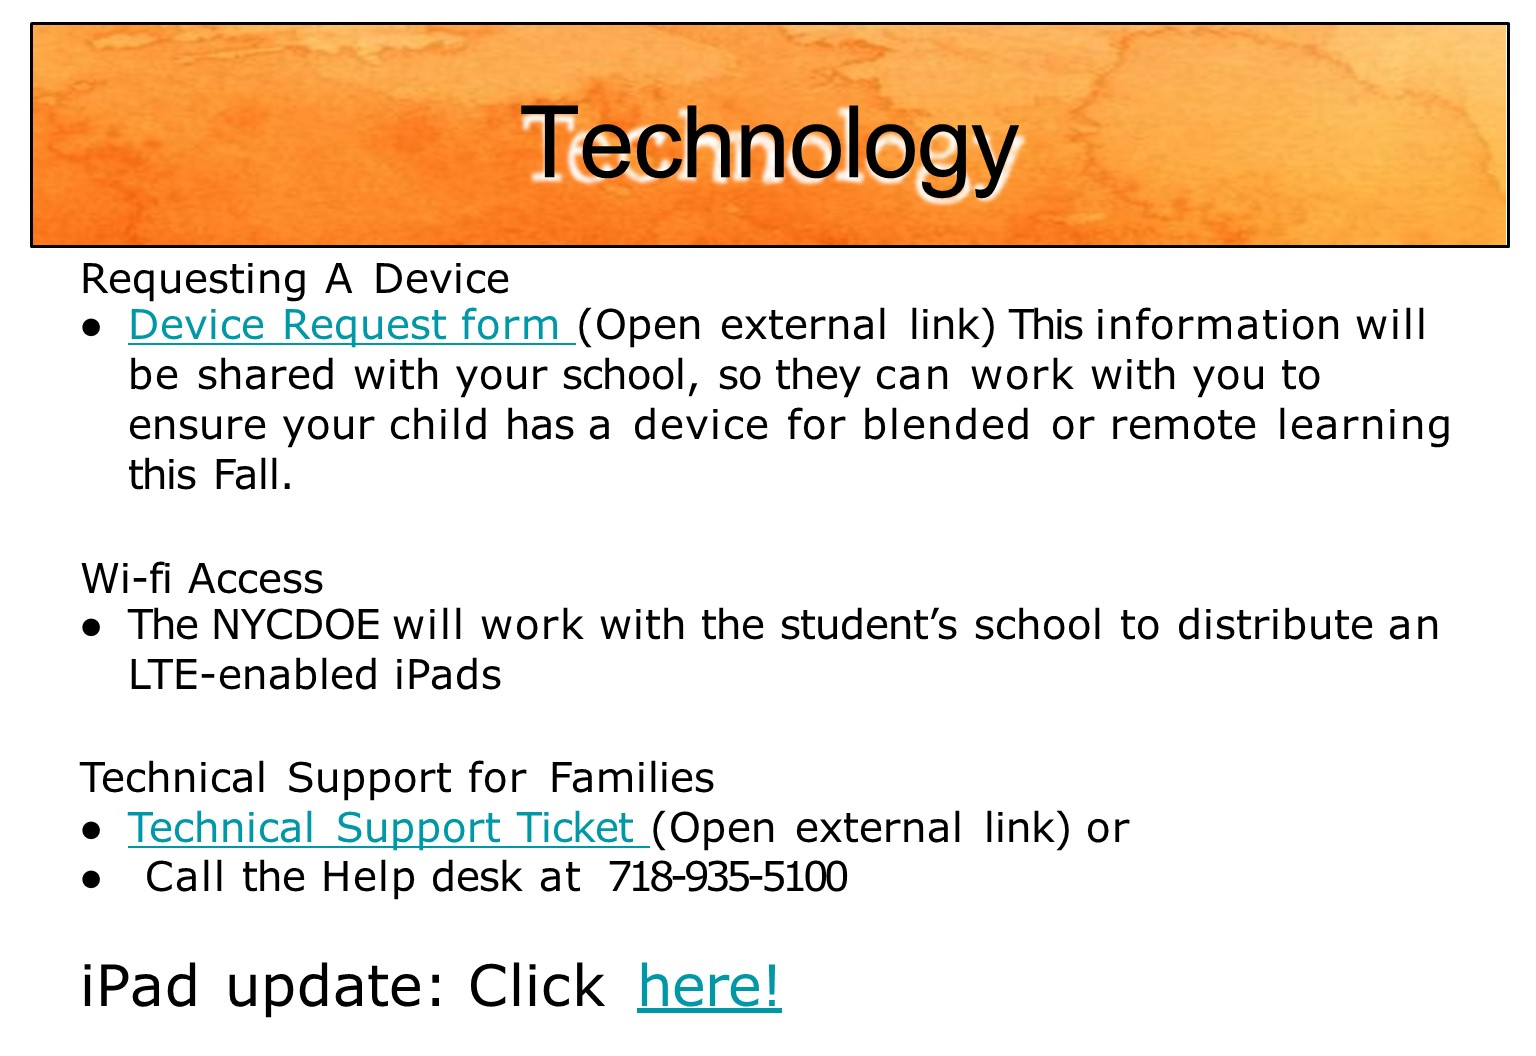 Technology and device update